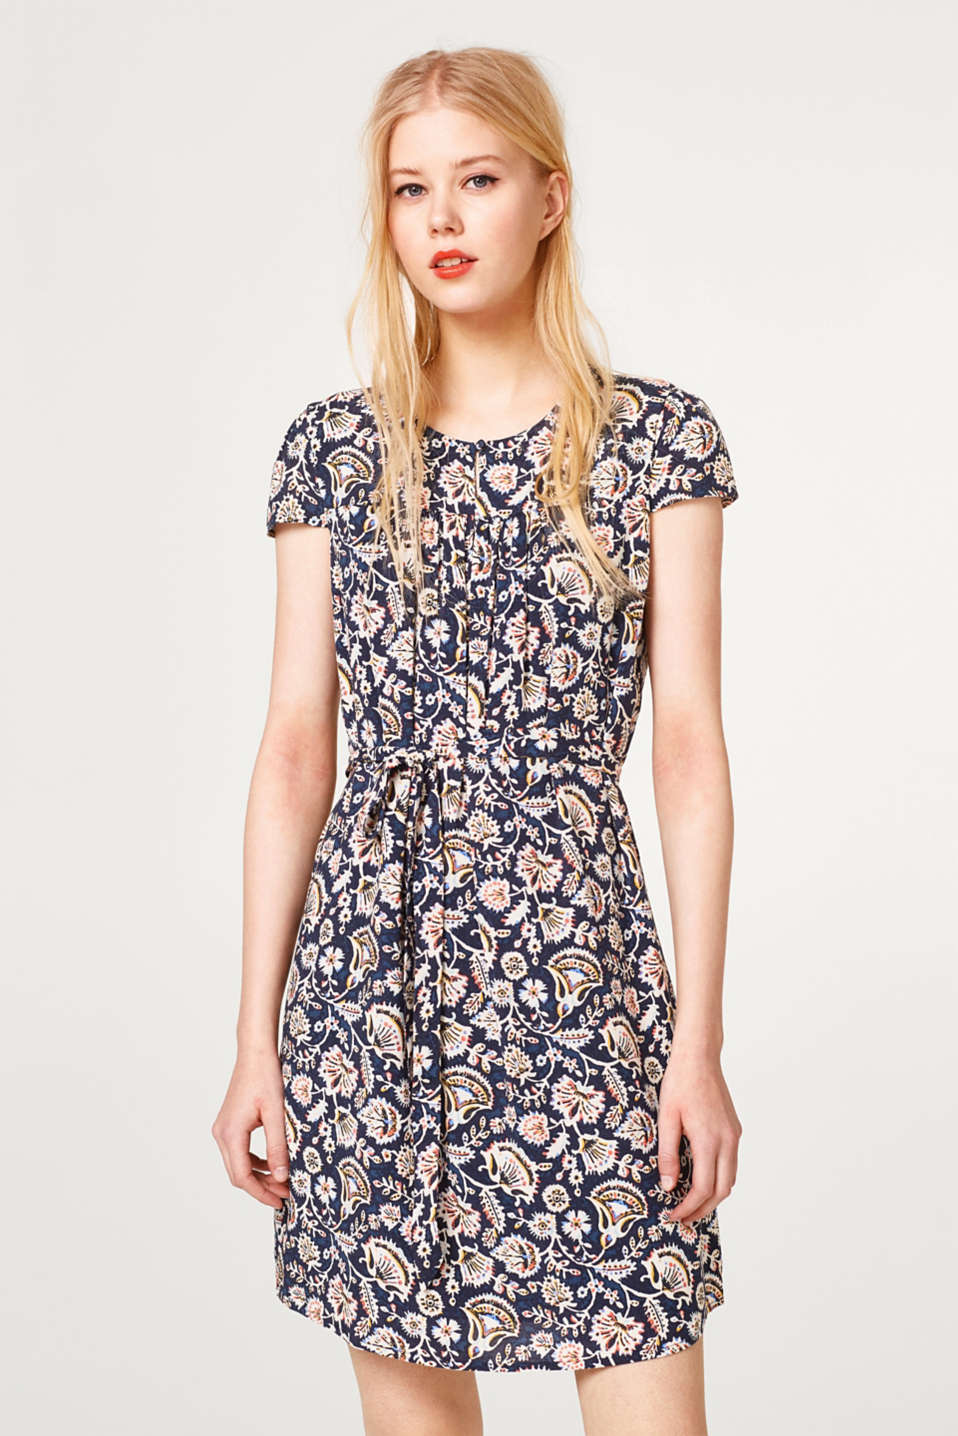 Esprit - Light dress with beautiful summer prints